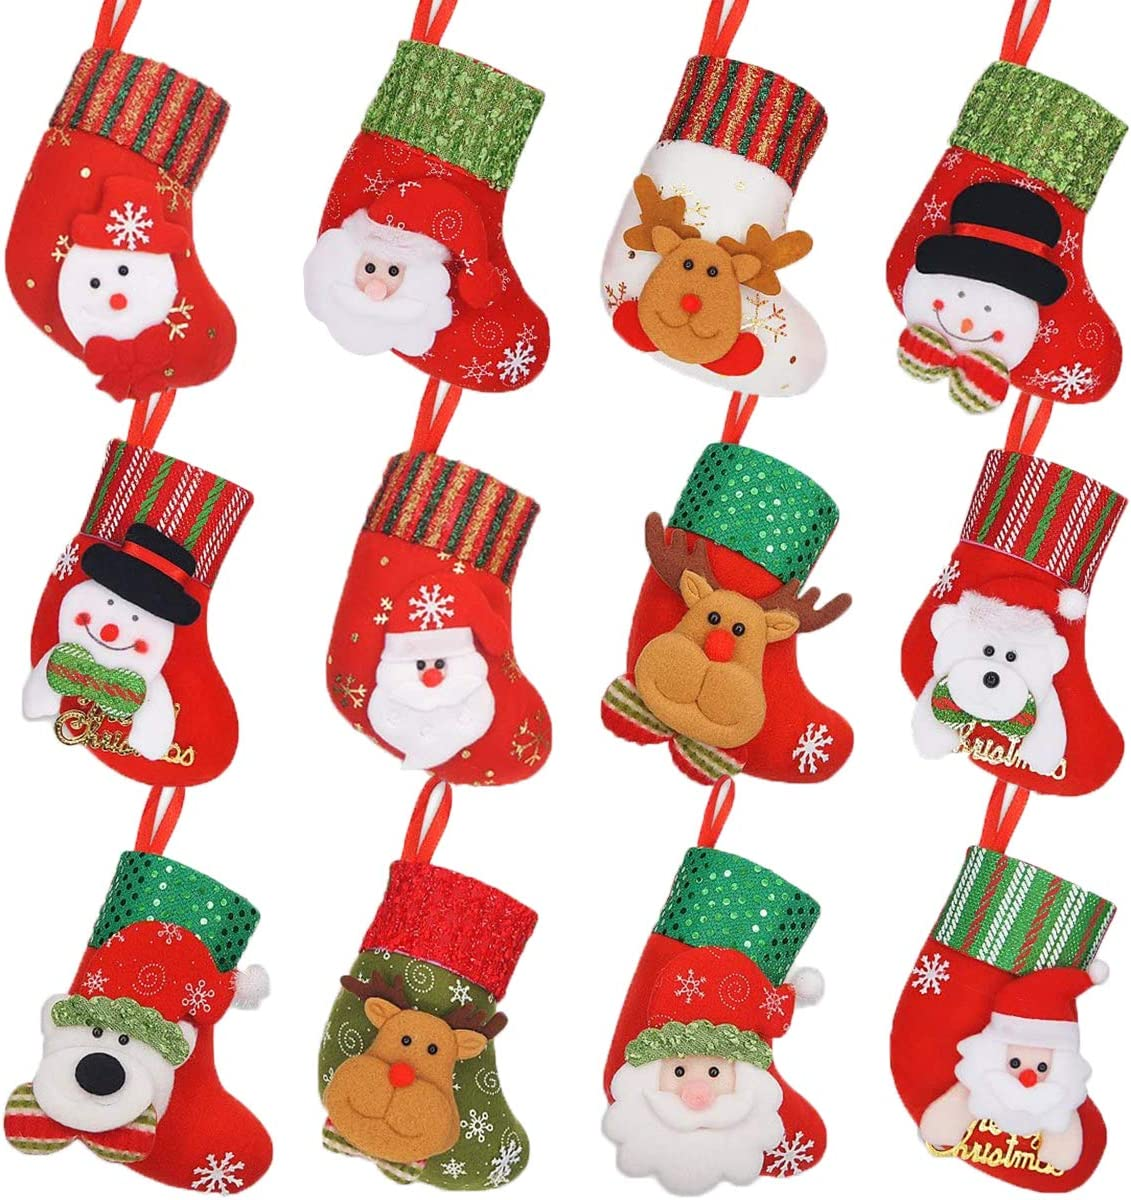 Limbridge Christmas Mini Stockings 12 Pack 6 25 Inches Small 3d Kids Mixed Set Felt Xmas Tree Santa Claus Snowman Reindeer Gift Card Silverware Holders Mini Personalized Holiday Treat Bags Home